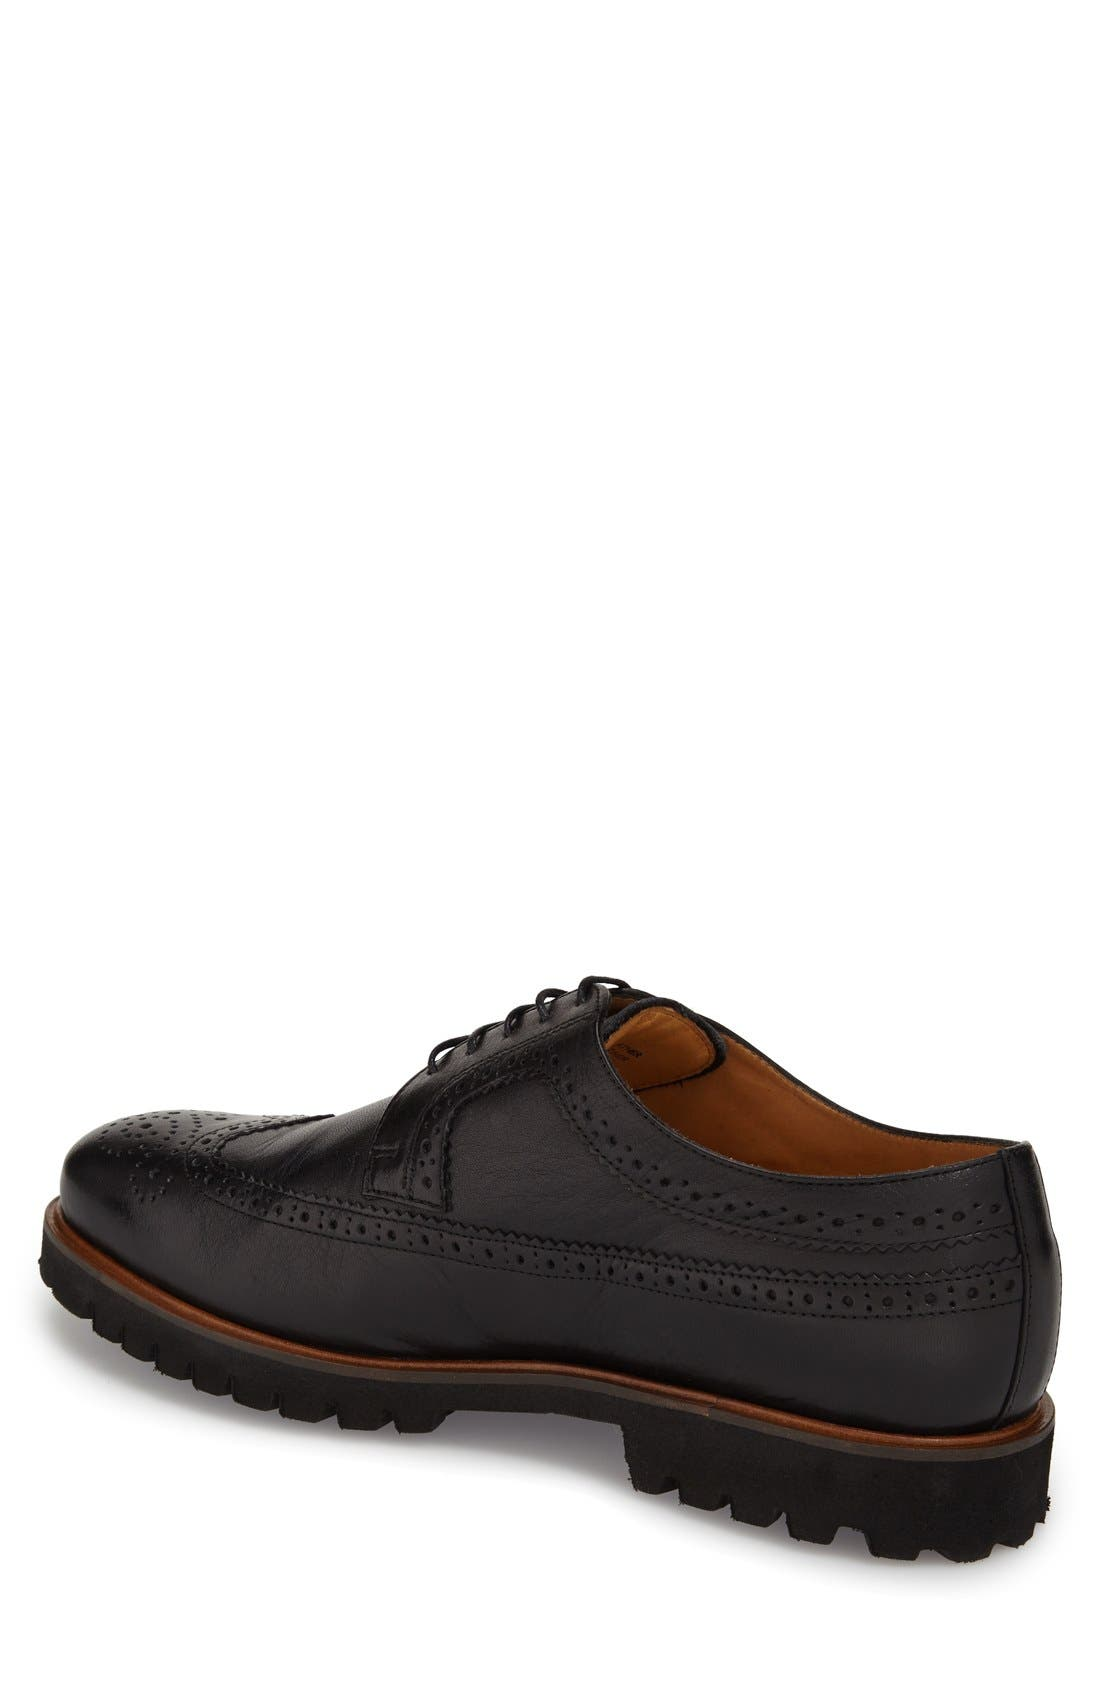 'Loven' Wingtip Derby,                             Alternate thumbnail 4, color,                             001